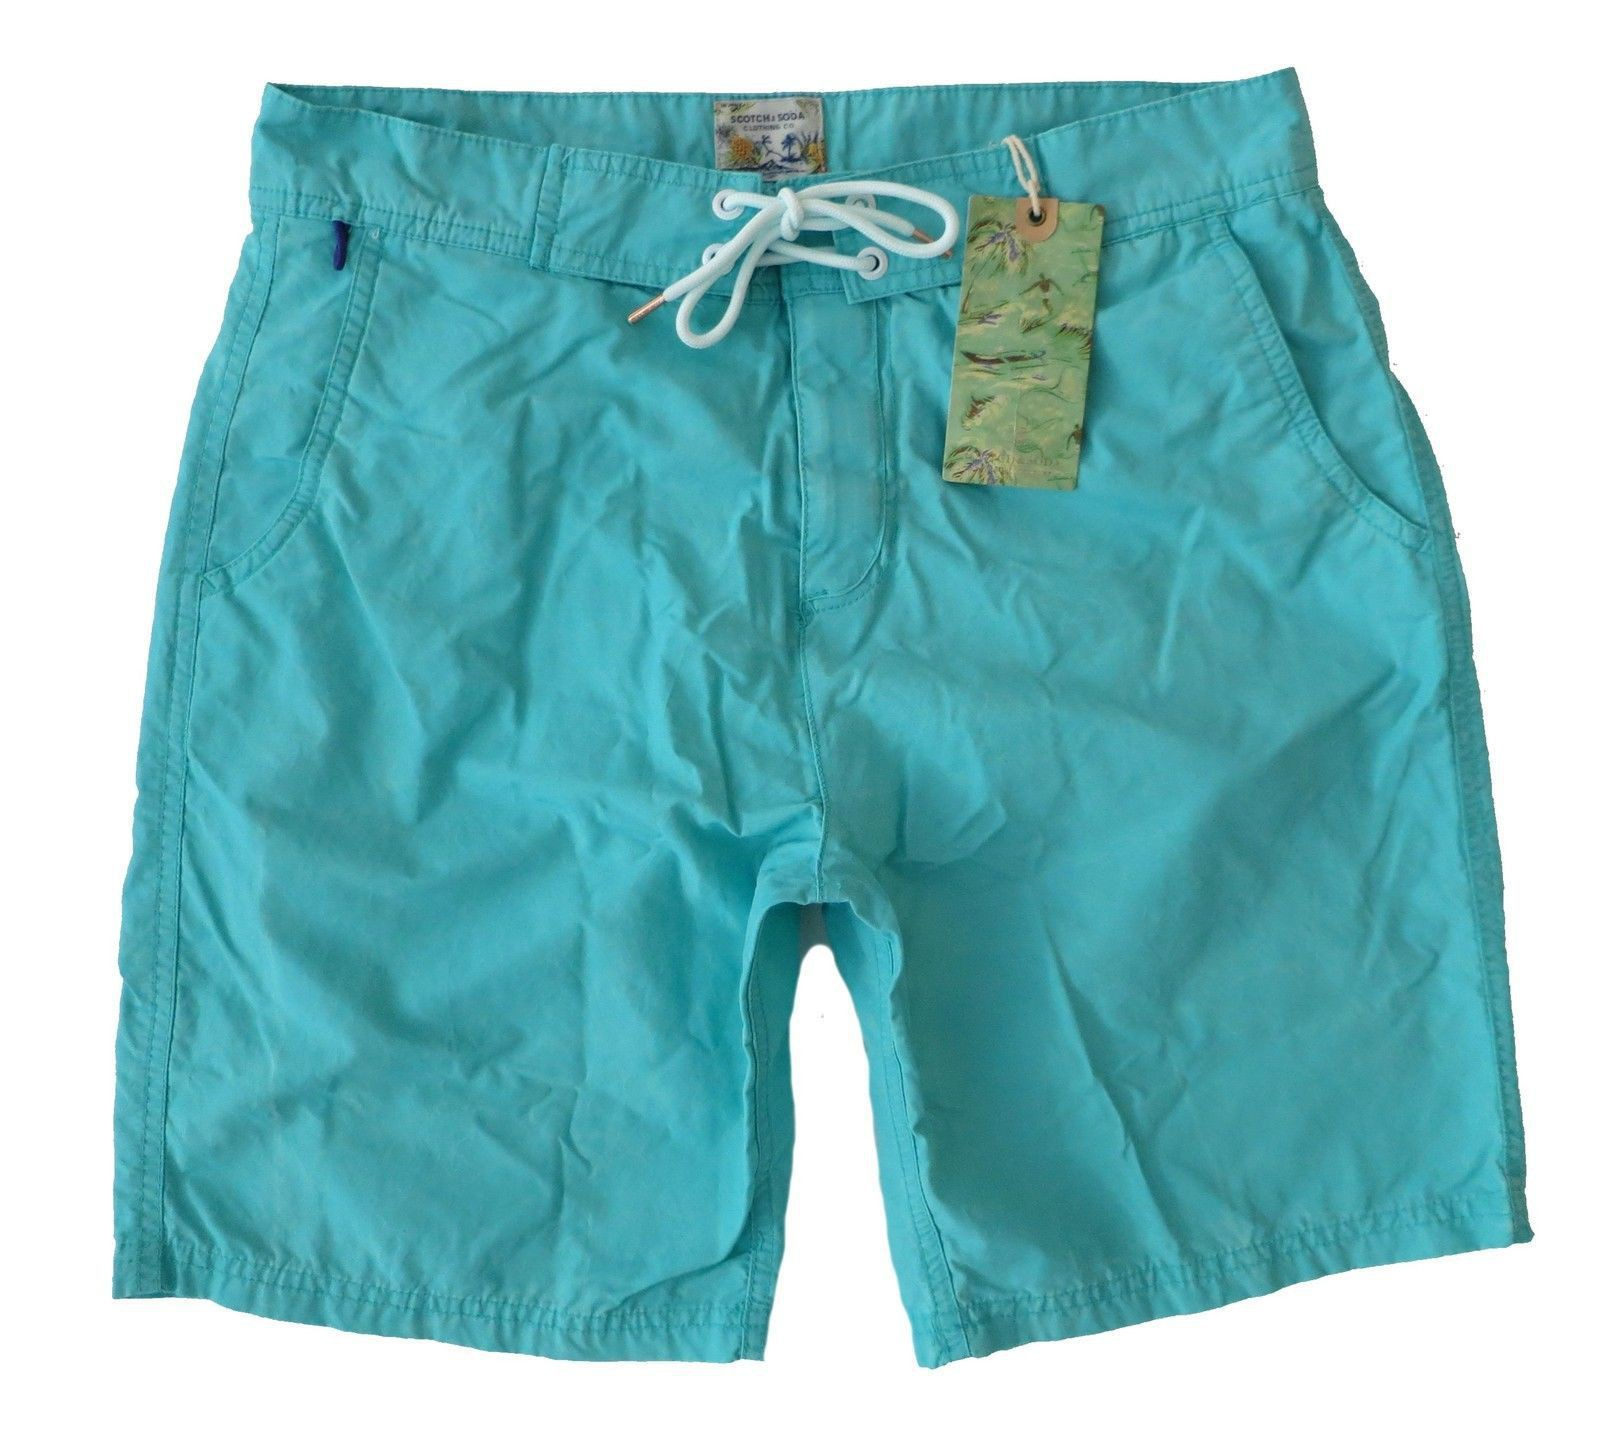 scotch and soda badeshorts sommer2014 shorts schwimmhose. Black Bedroom Furniture Sets. Home Design Ideas